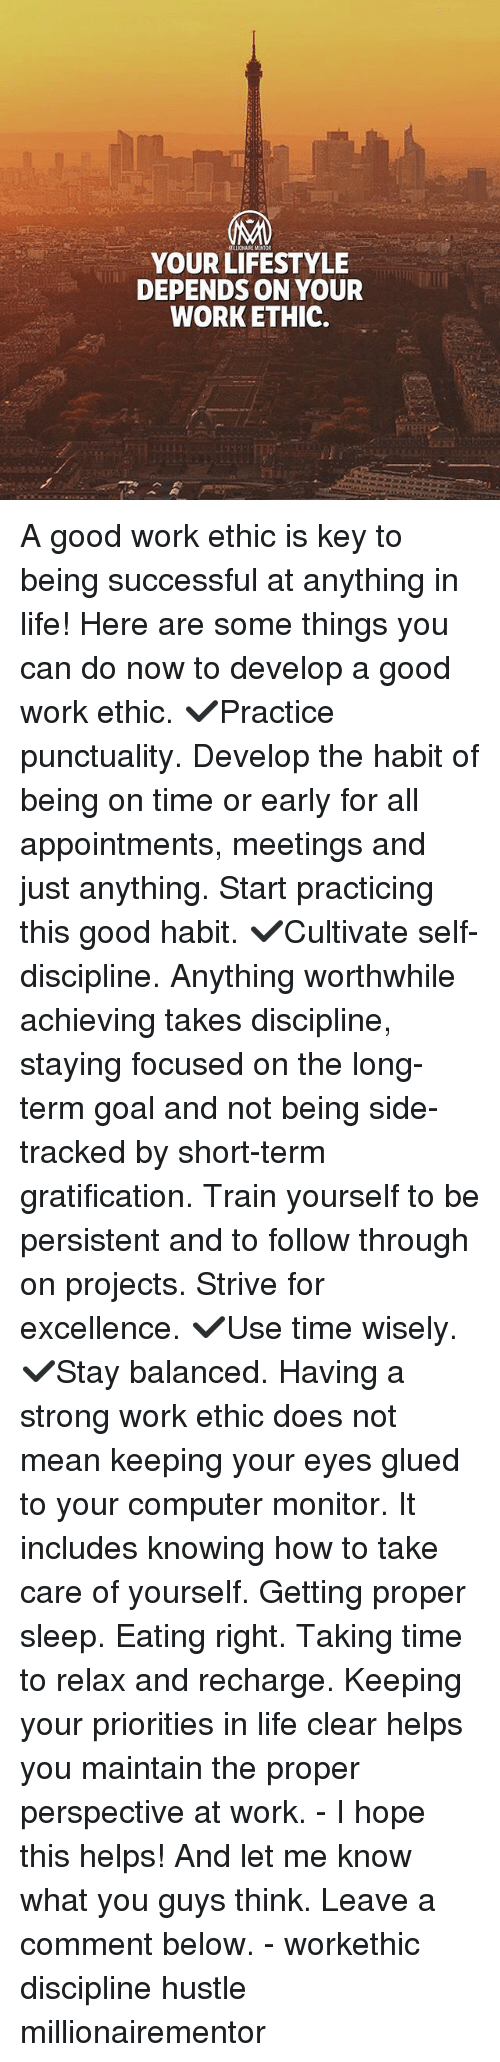 Life, Memes, and Work: YOUR LIFESTYLE  DEPENDS ON YOUR  WORKETHIC. A good work ethic is key to being successful at anything in life! Here are some things you can do now to develop a good work ethic. ✔️Practice punctuality. Develop the habit of being on time or early for all appointments, meetings and just anything. Start practicing this good habit. ✔️Cultivate self-discipline. Anything worthwhile achieving takes discipline, staying focused on the long-term goal and not being side-tracked by short-term gratification. Train yourself to be persistent and to follow through on projects. Strive for excellence. ✔️Use time wisely. ✔️Stay balanced. Having a strong work ethic does not mean keeping your eyes glued to your computer monitor. It includes knowing how to take care of yourself. Getting proper sleep. Eating right. Taking time to relax and recharge. Keeping your priorities in life clear helps you maintain the proper perspective at work. - I hope this helps! And let me know what you guys think. Leave a comment below. - workethic discipline hustle millionairementor